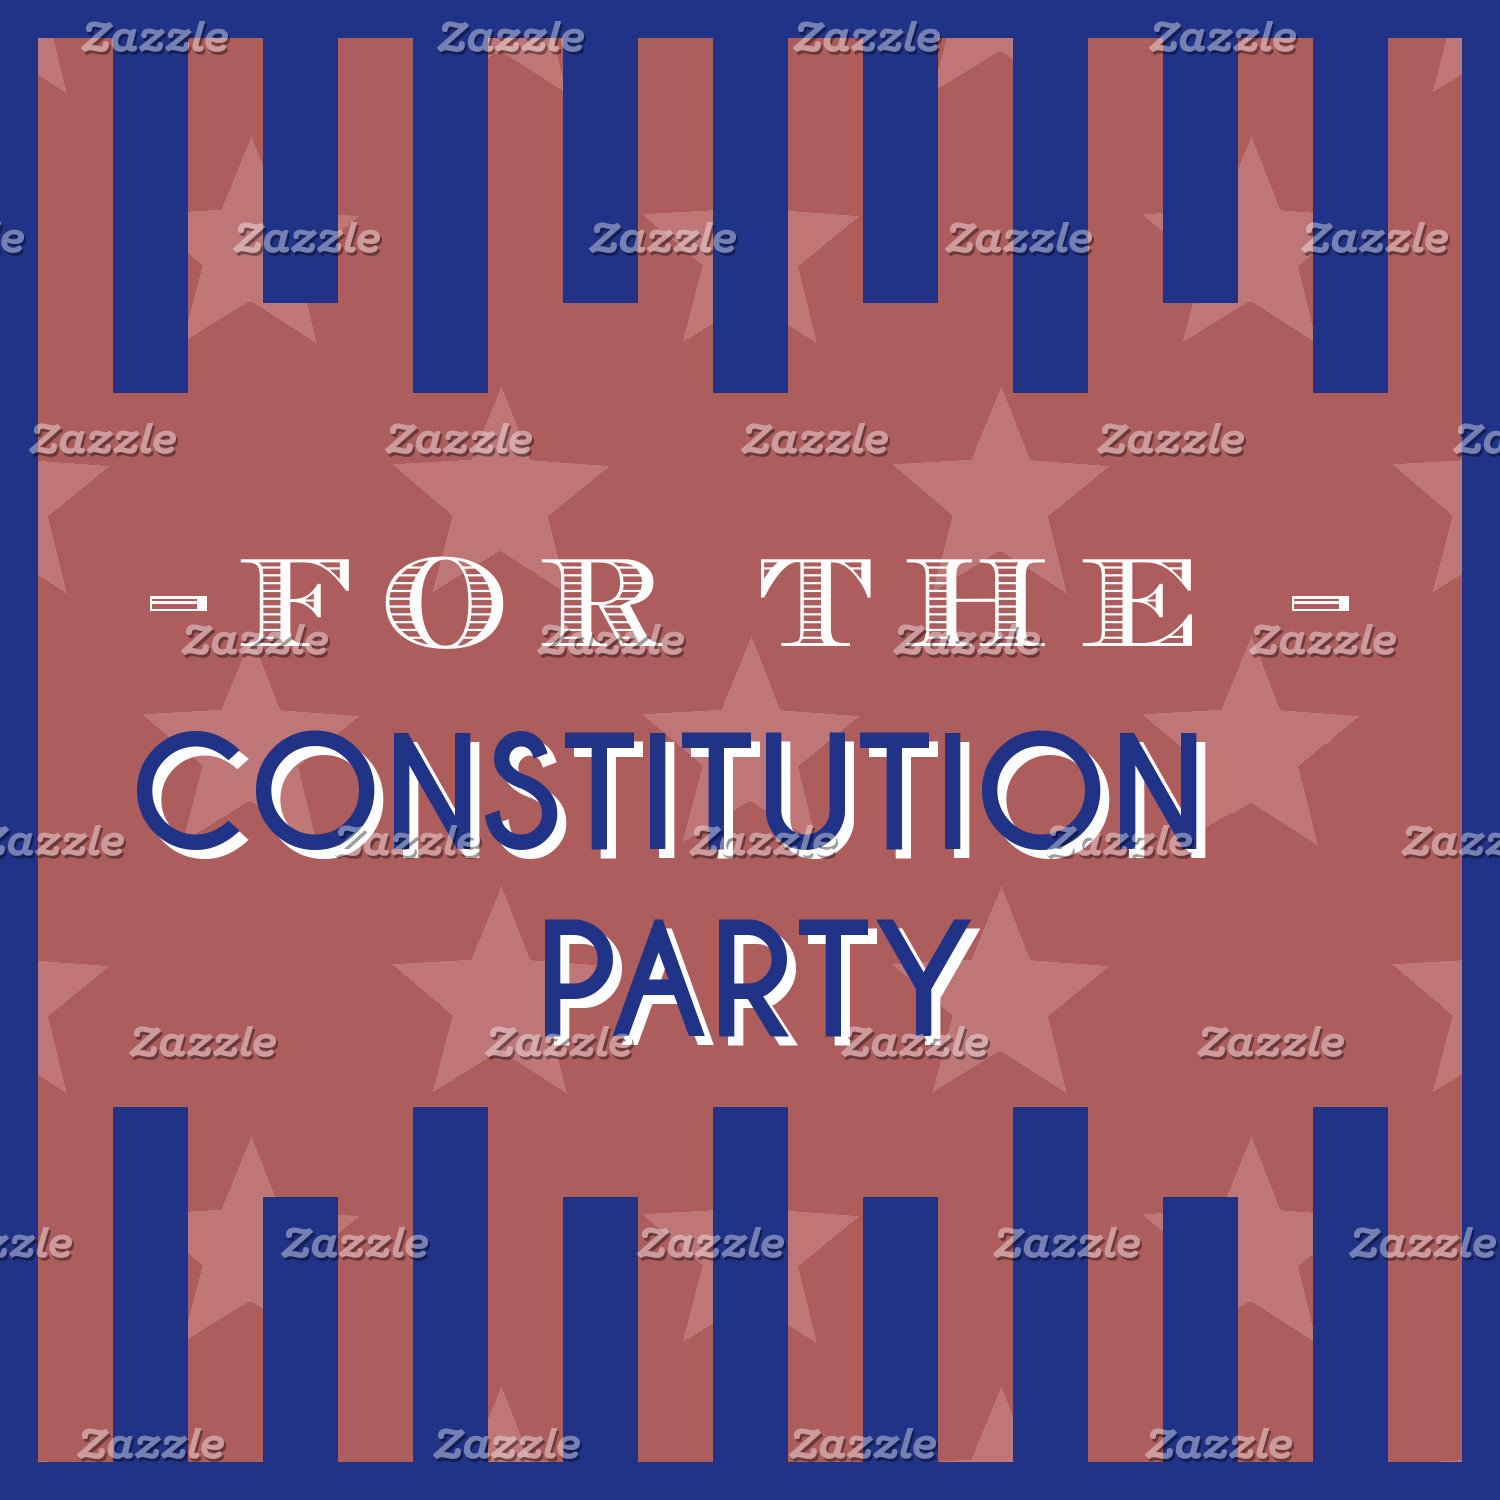 for the Constitution Party